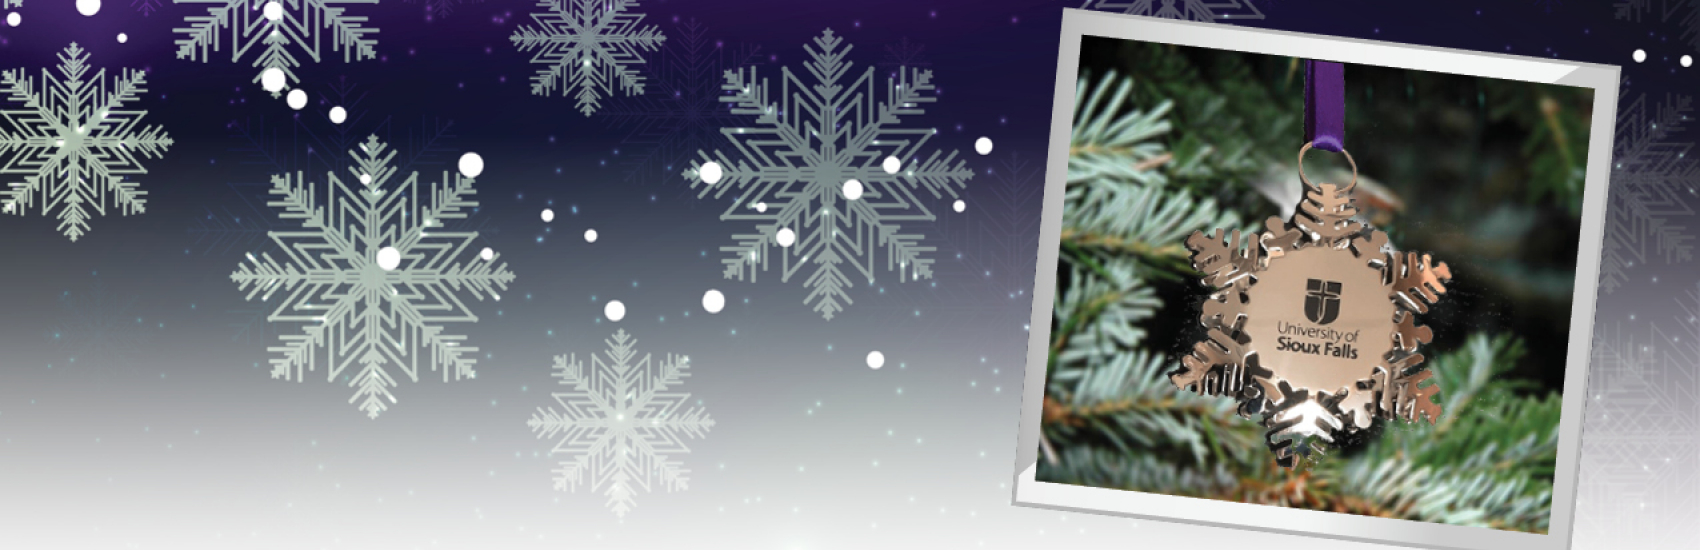 Christmas Ornament in snowflake shape